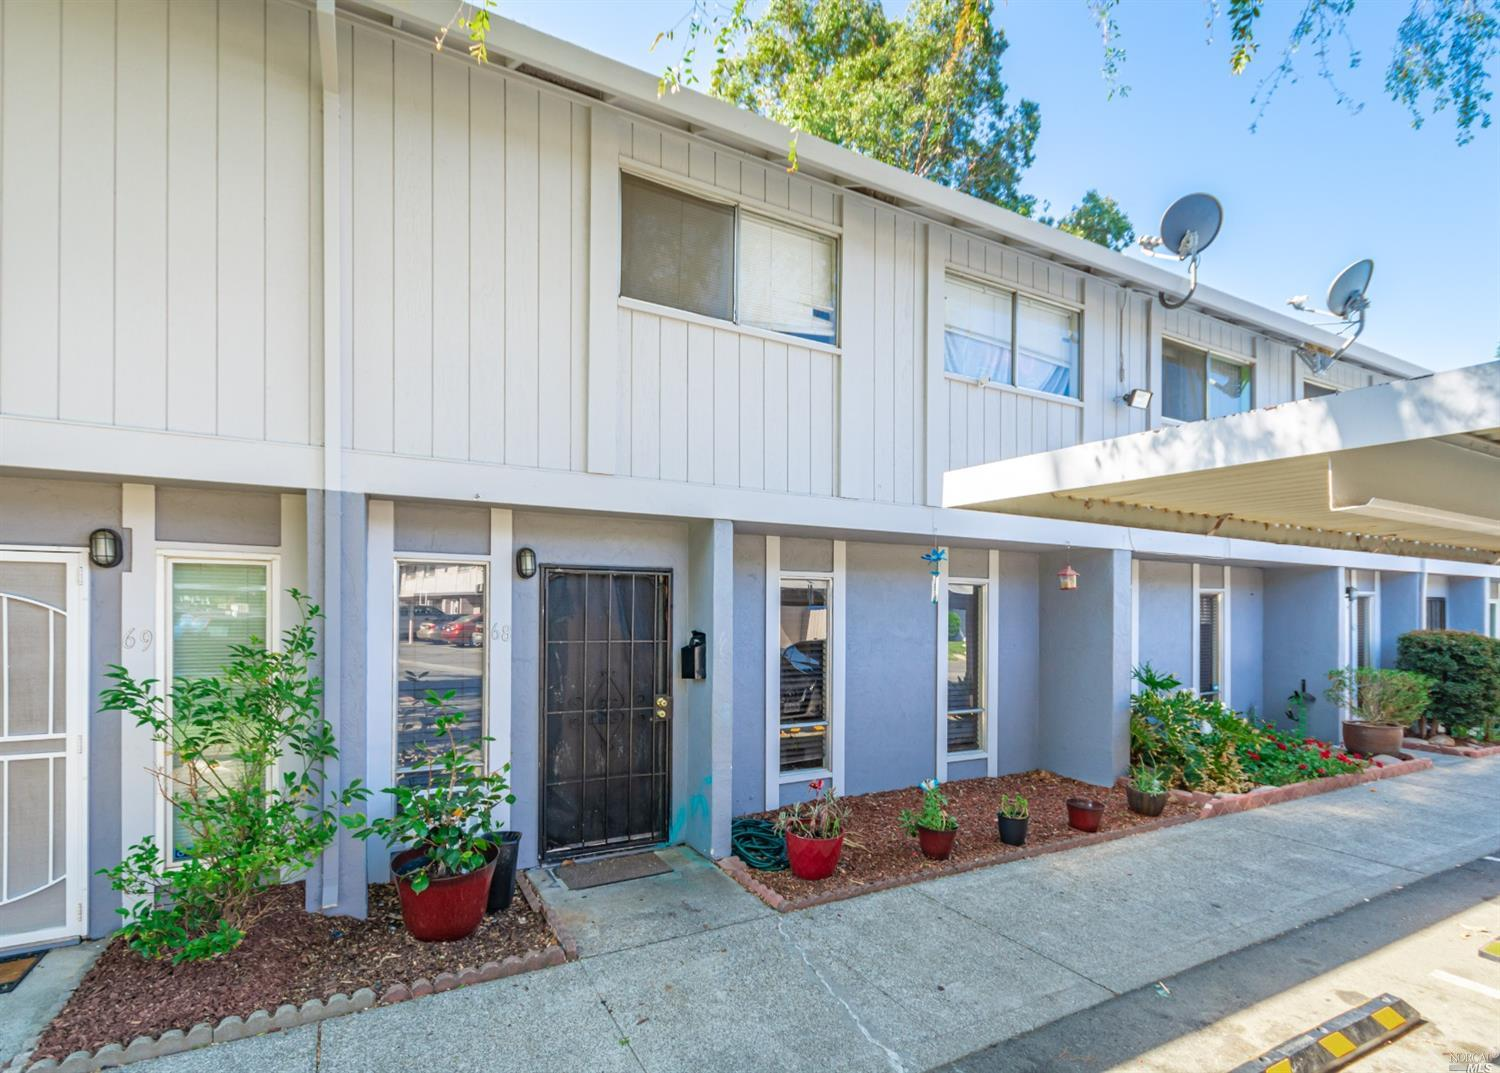 Investor special! Current tenant pays rent on time in this spacious 3 bedroom, 1.5 bath condominium